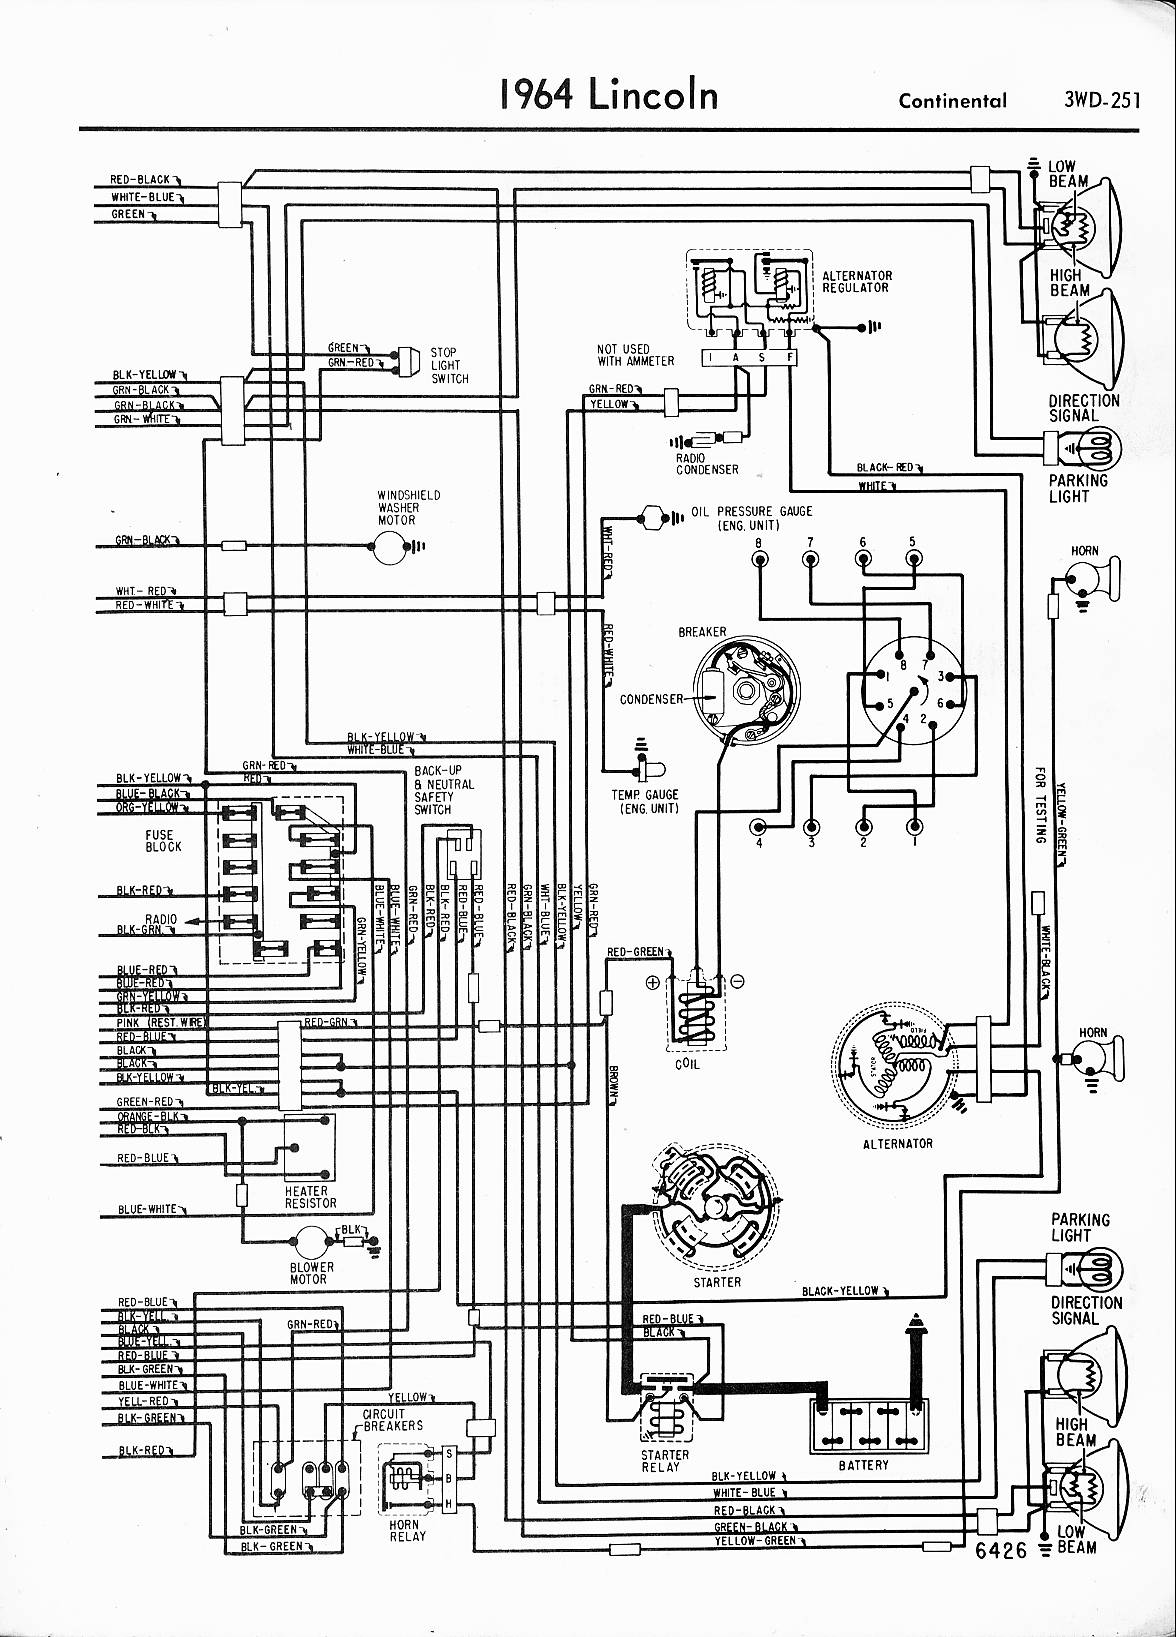 1960 mark v window wiring diagram 33 wiring diagram 1965 Lincoln  Continental Wiring-Diagram 1961 lincoln continental convertible top wiring  diagram